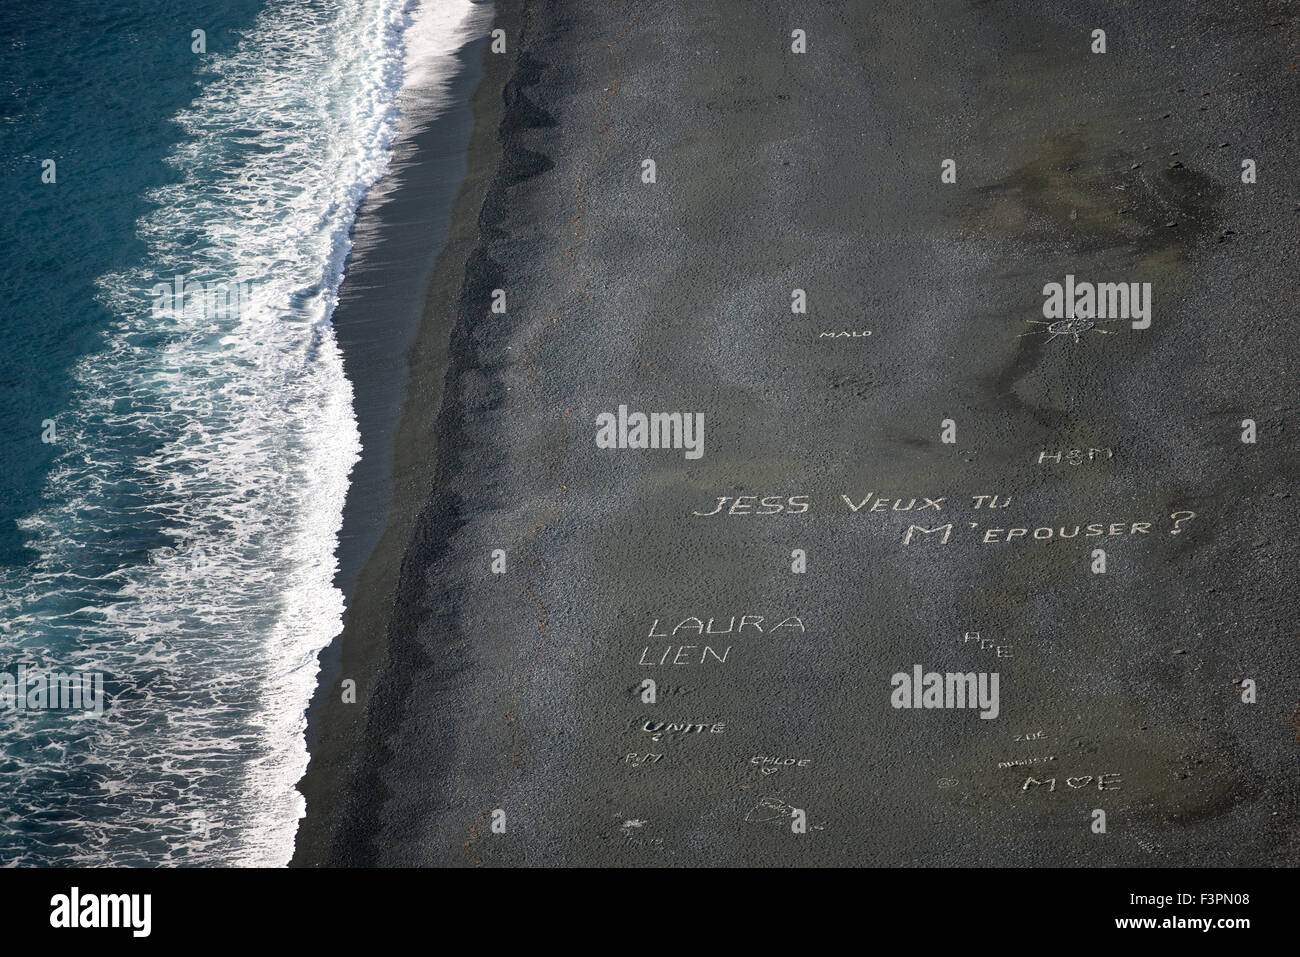 Designs and writings on the black beach, Nonza, Corsica, France - Stock Image